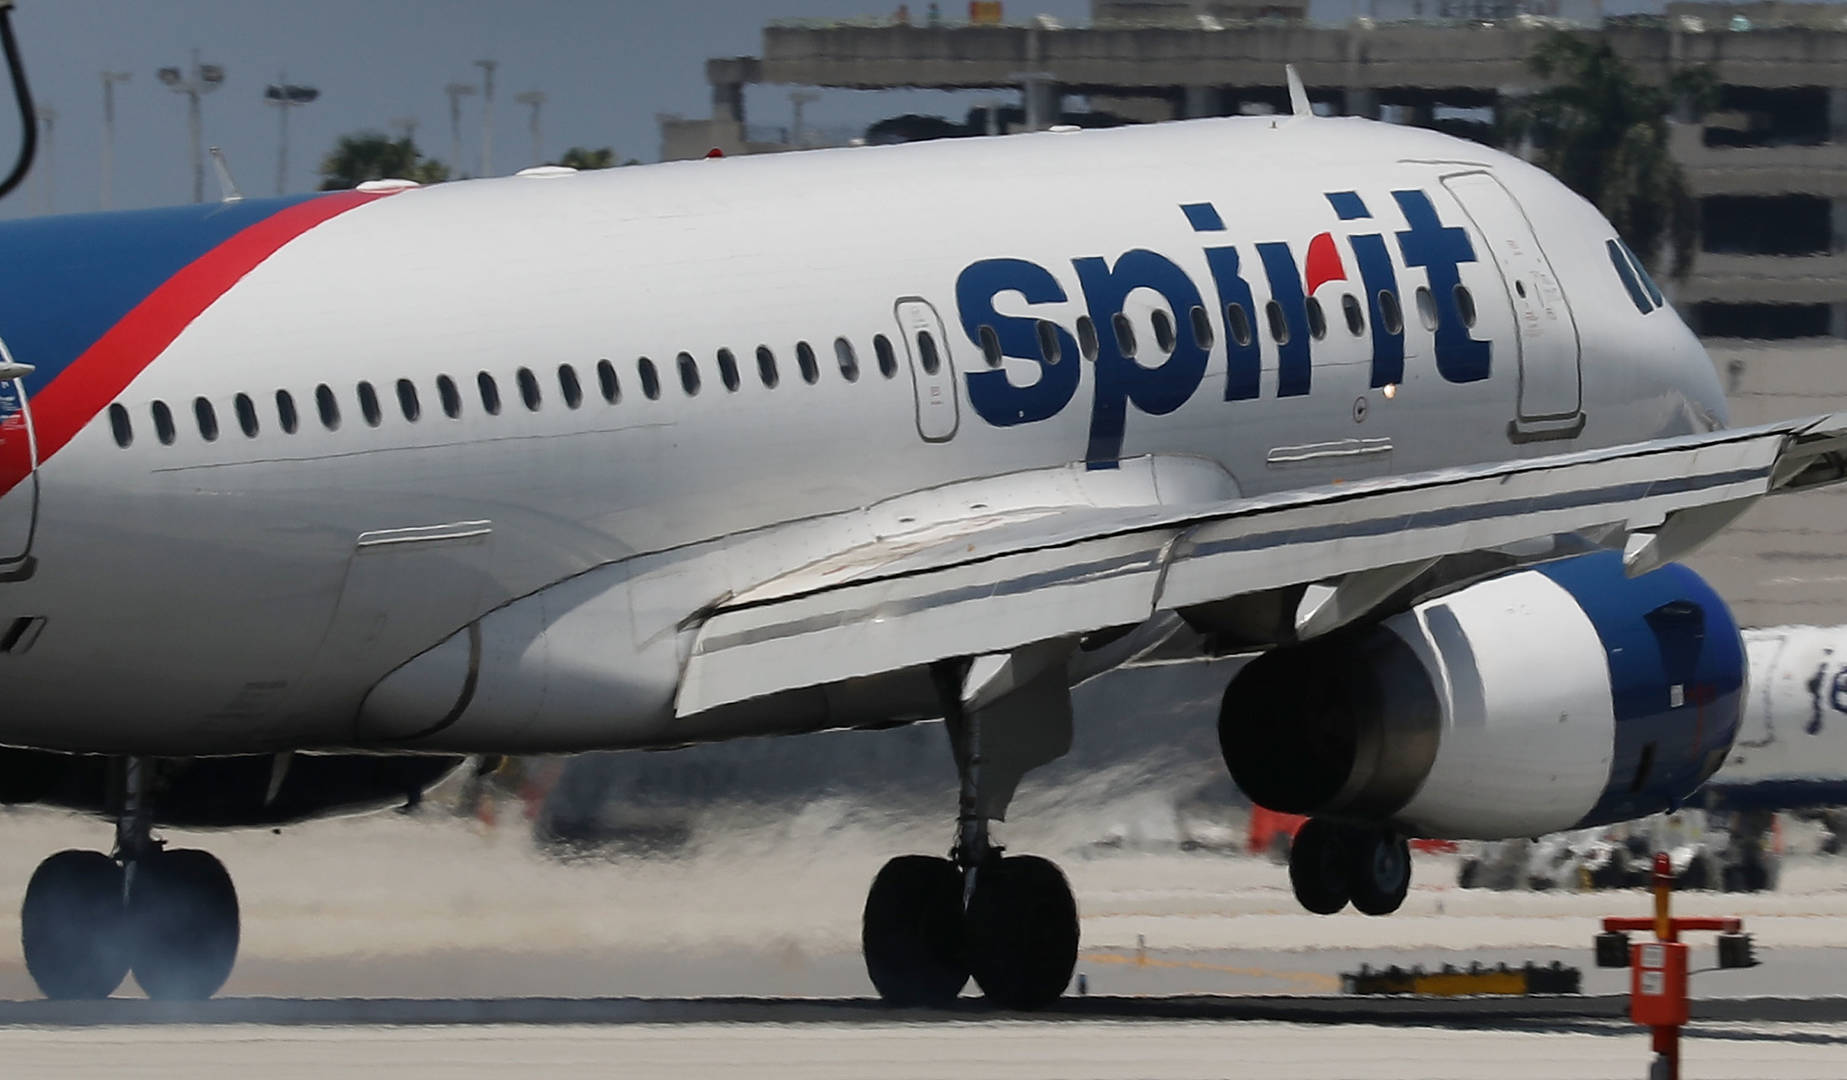 Spirit Airlines Passenger Banned For Life After Getting Caught Vaping In Bathroom